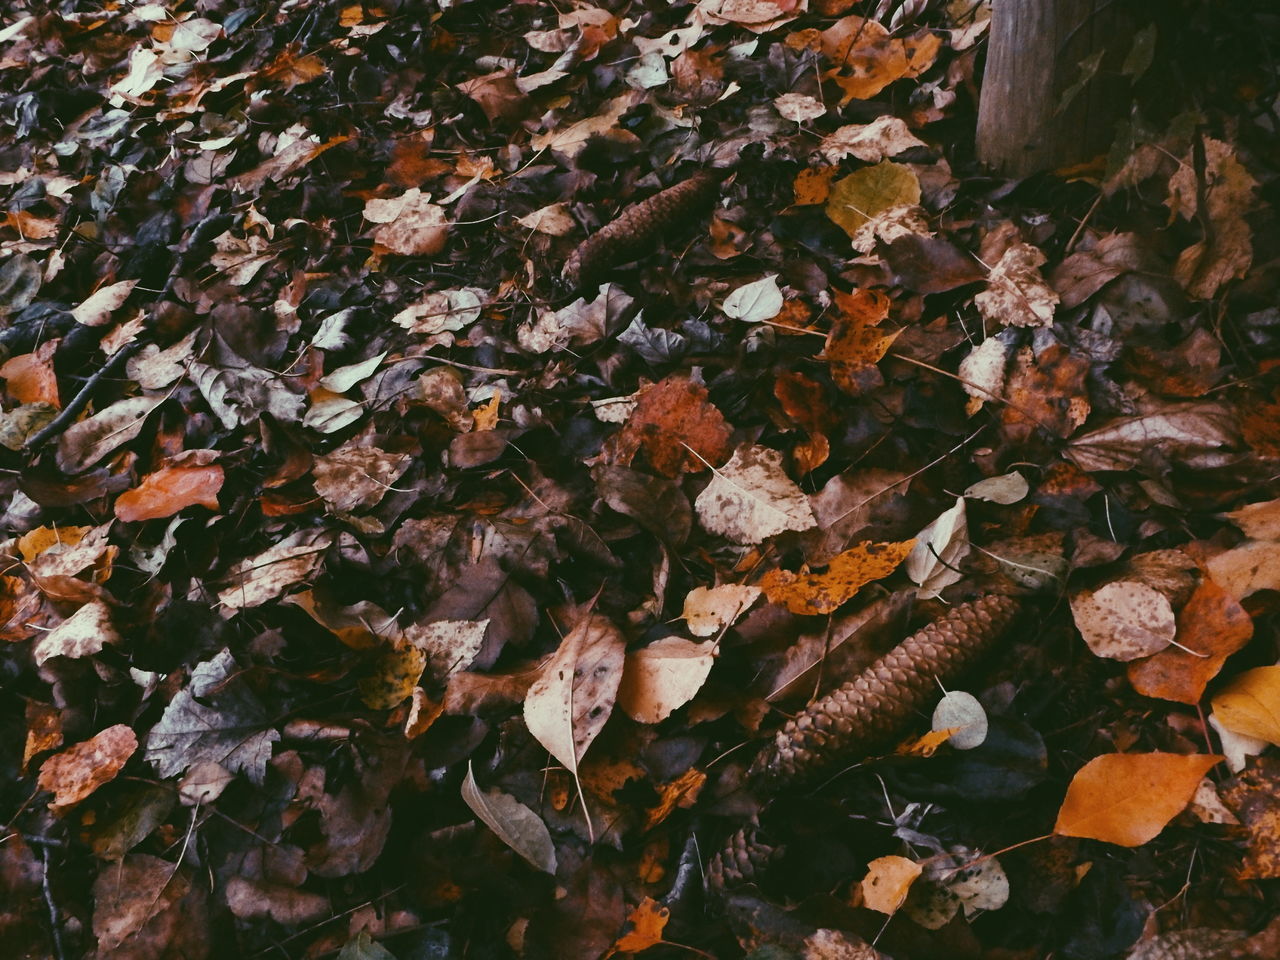 autumn, leaf, change, leaves, dry, nature, fallen, abundance, maple leaf, outdoors, beauty in nature, maple, no people, day, fragility, close-up